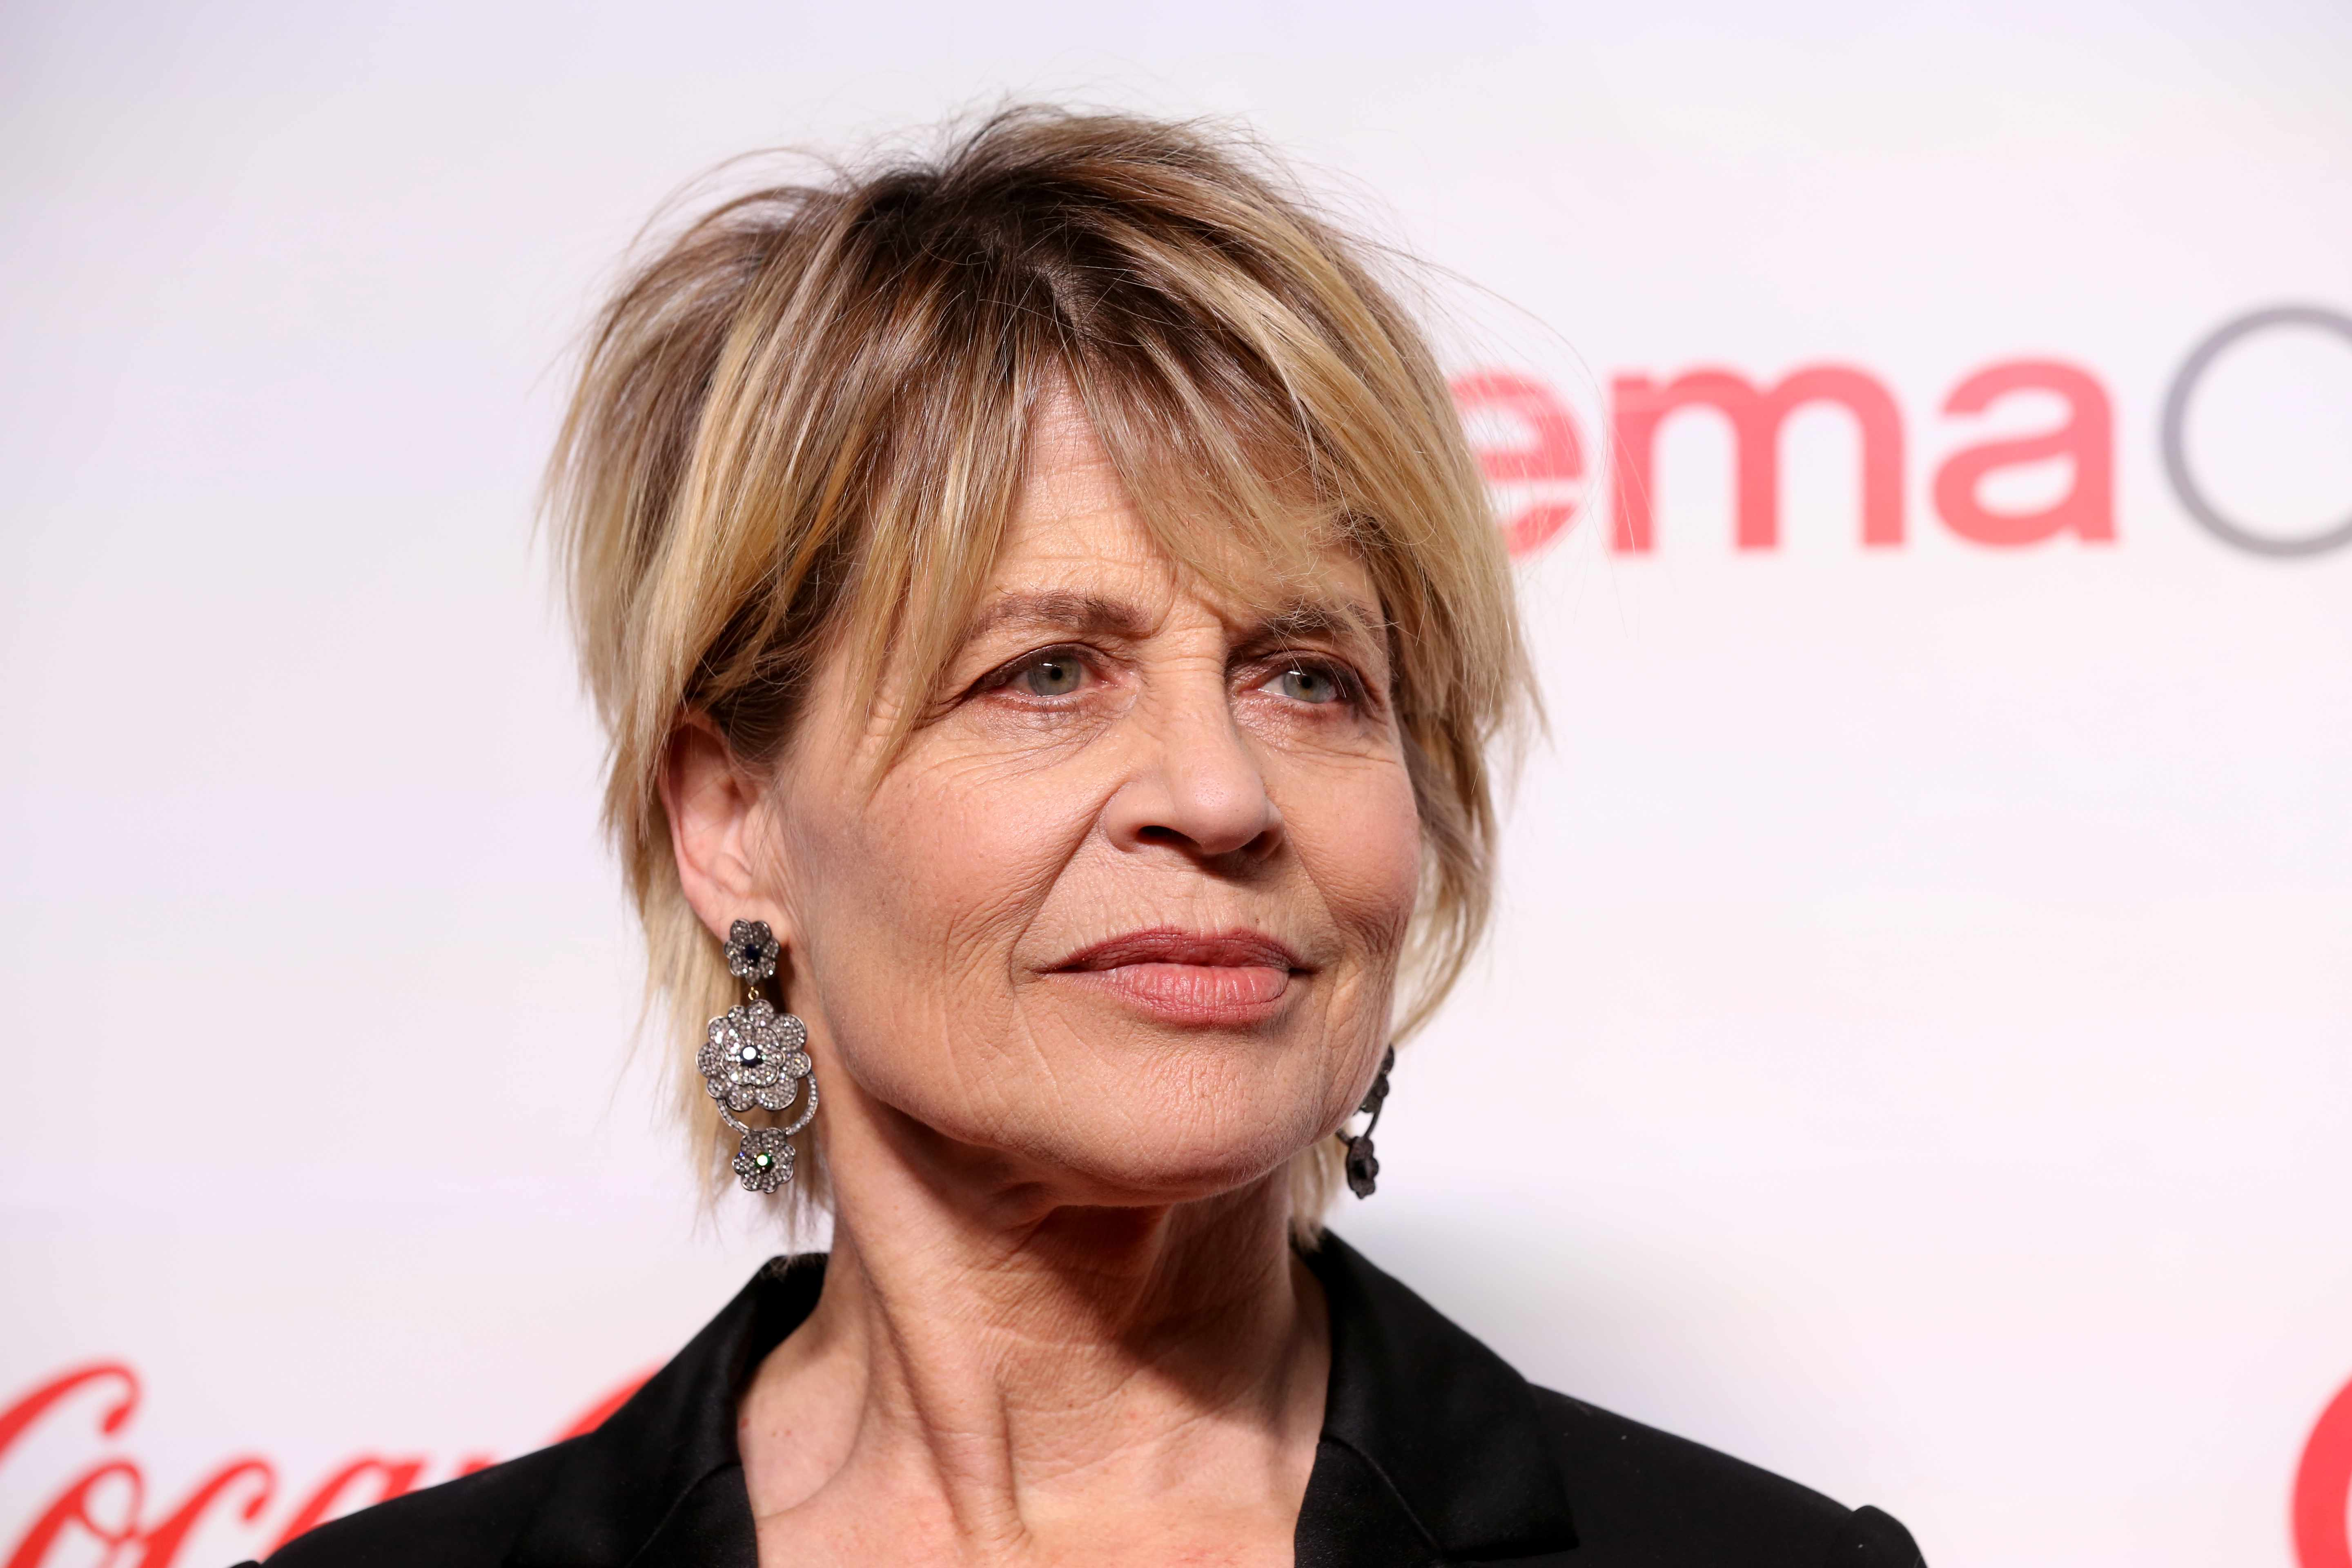 """LAS VEGAS, NEVADA - APRIL 04: Recipient of the """"CinemaCon Ensemble Award"""" for the upcoming movie """"Terminator: Dark Fate"""" actress Linda Hamilton attends the CinemaCon Big Screen Achievement Awards at Omnia Nightclub at Caesars Palace on April 04, 2019 in Las Vegas, Nevada. CinemaCon is the official convention of the National Association of Theatre Owners. (Photo by Gabe Ginsberg/WireImage)"""